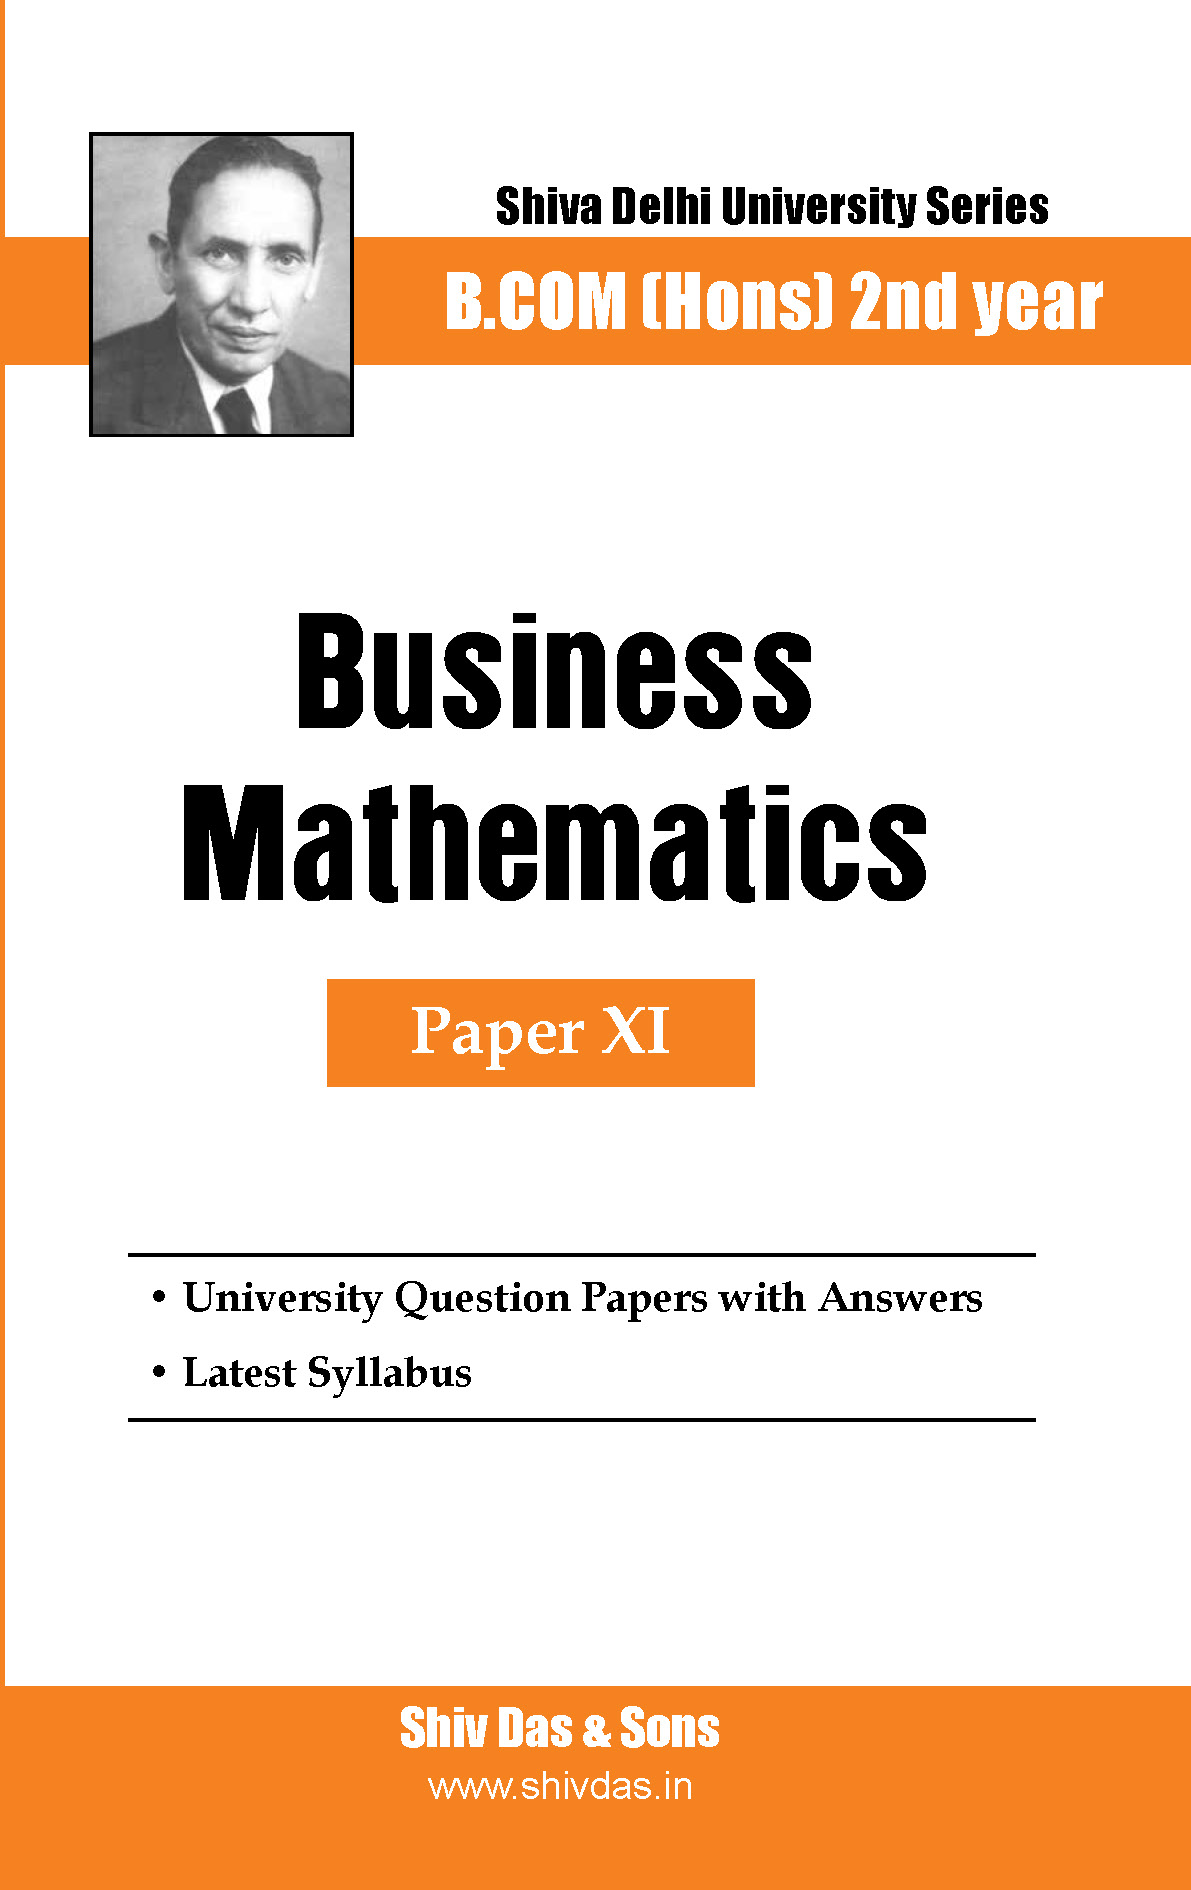 Business Mathematics for B.Com Hons SOL/External 2nd Year